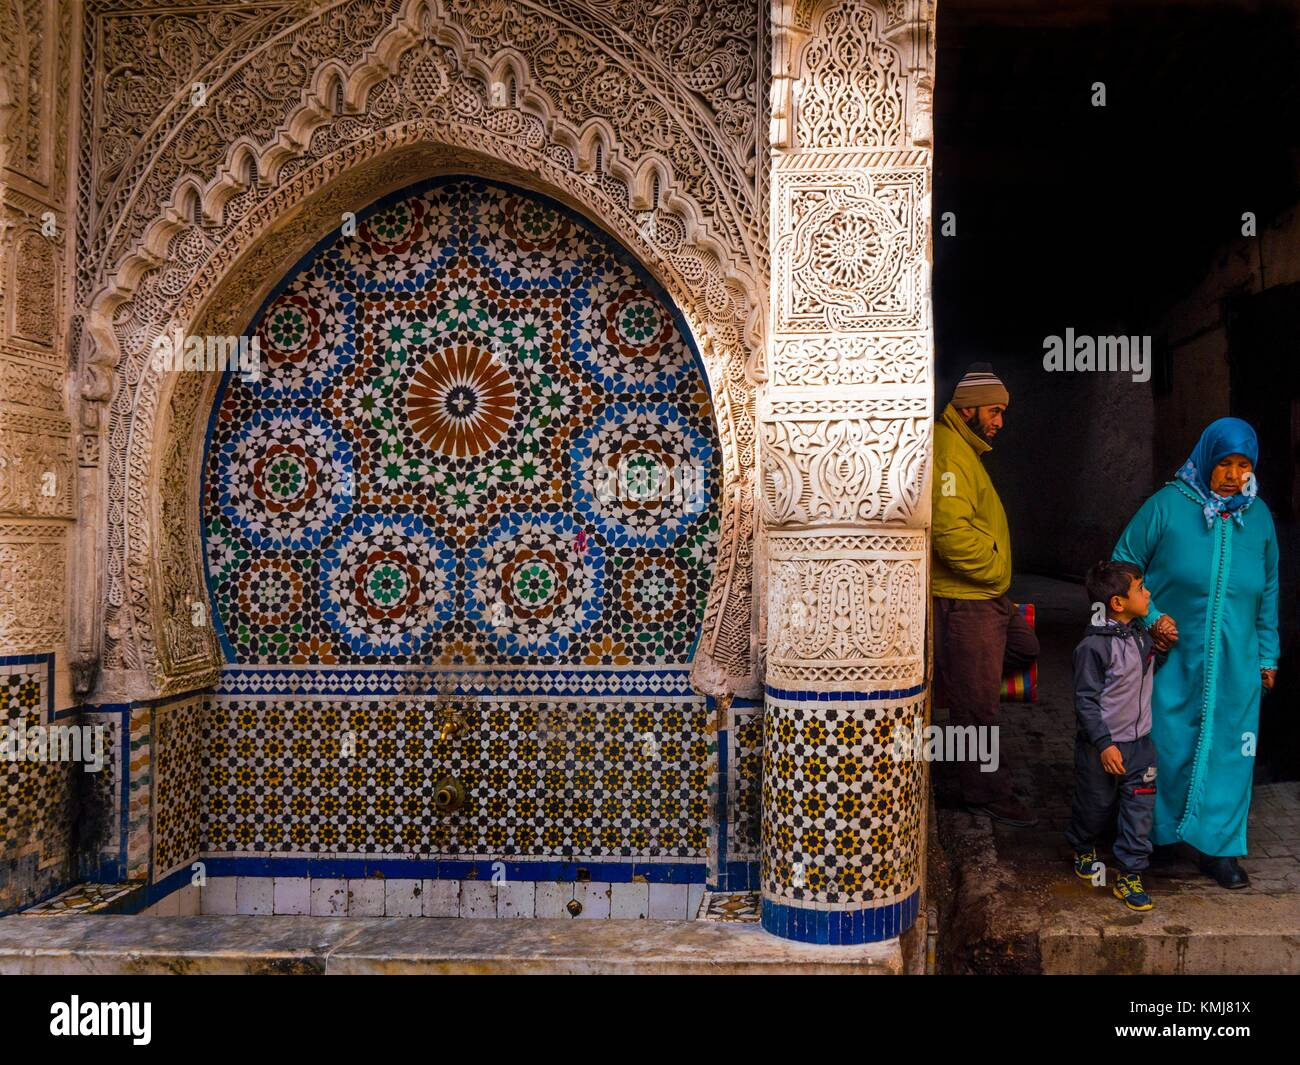 Morocco, Fes, Nejjarine fontain. The Nejjarine Fountain, best known of the medina´s mosaic fountains, and in - Stock Image